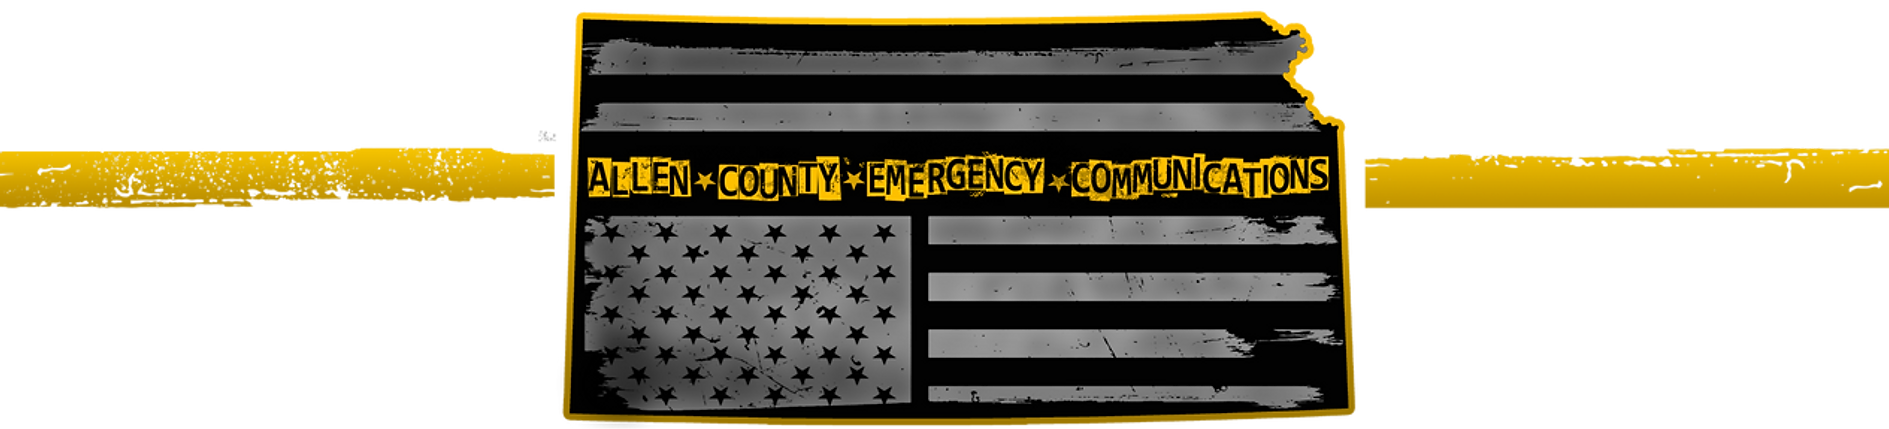 Allen County Logo 3 - With Ribbon (FOR W